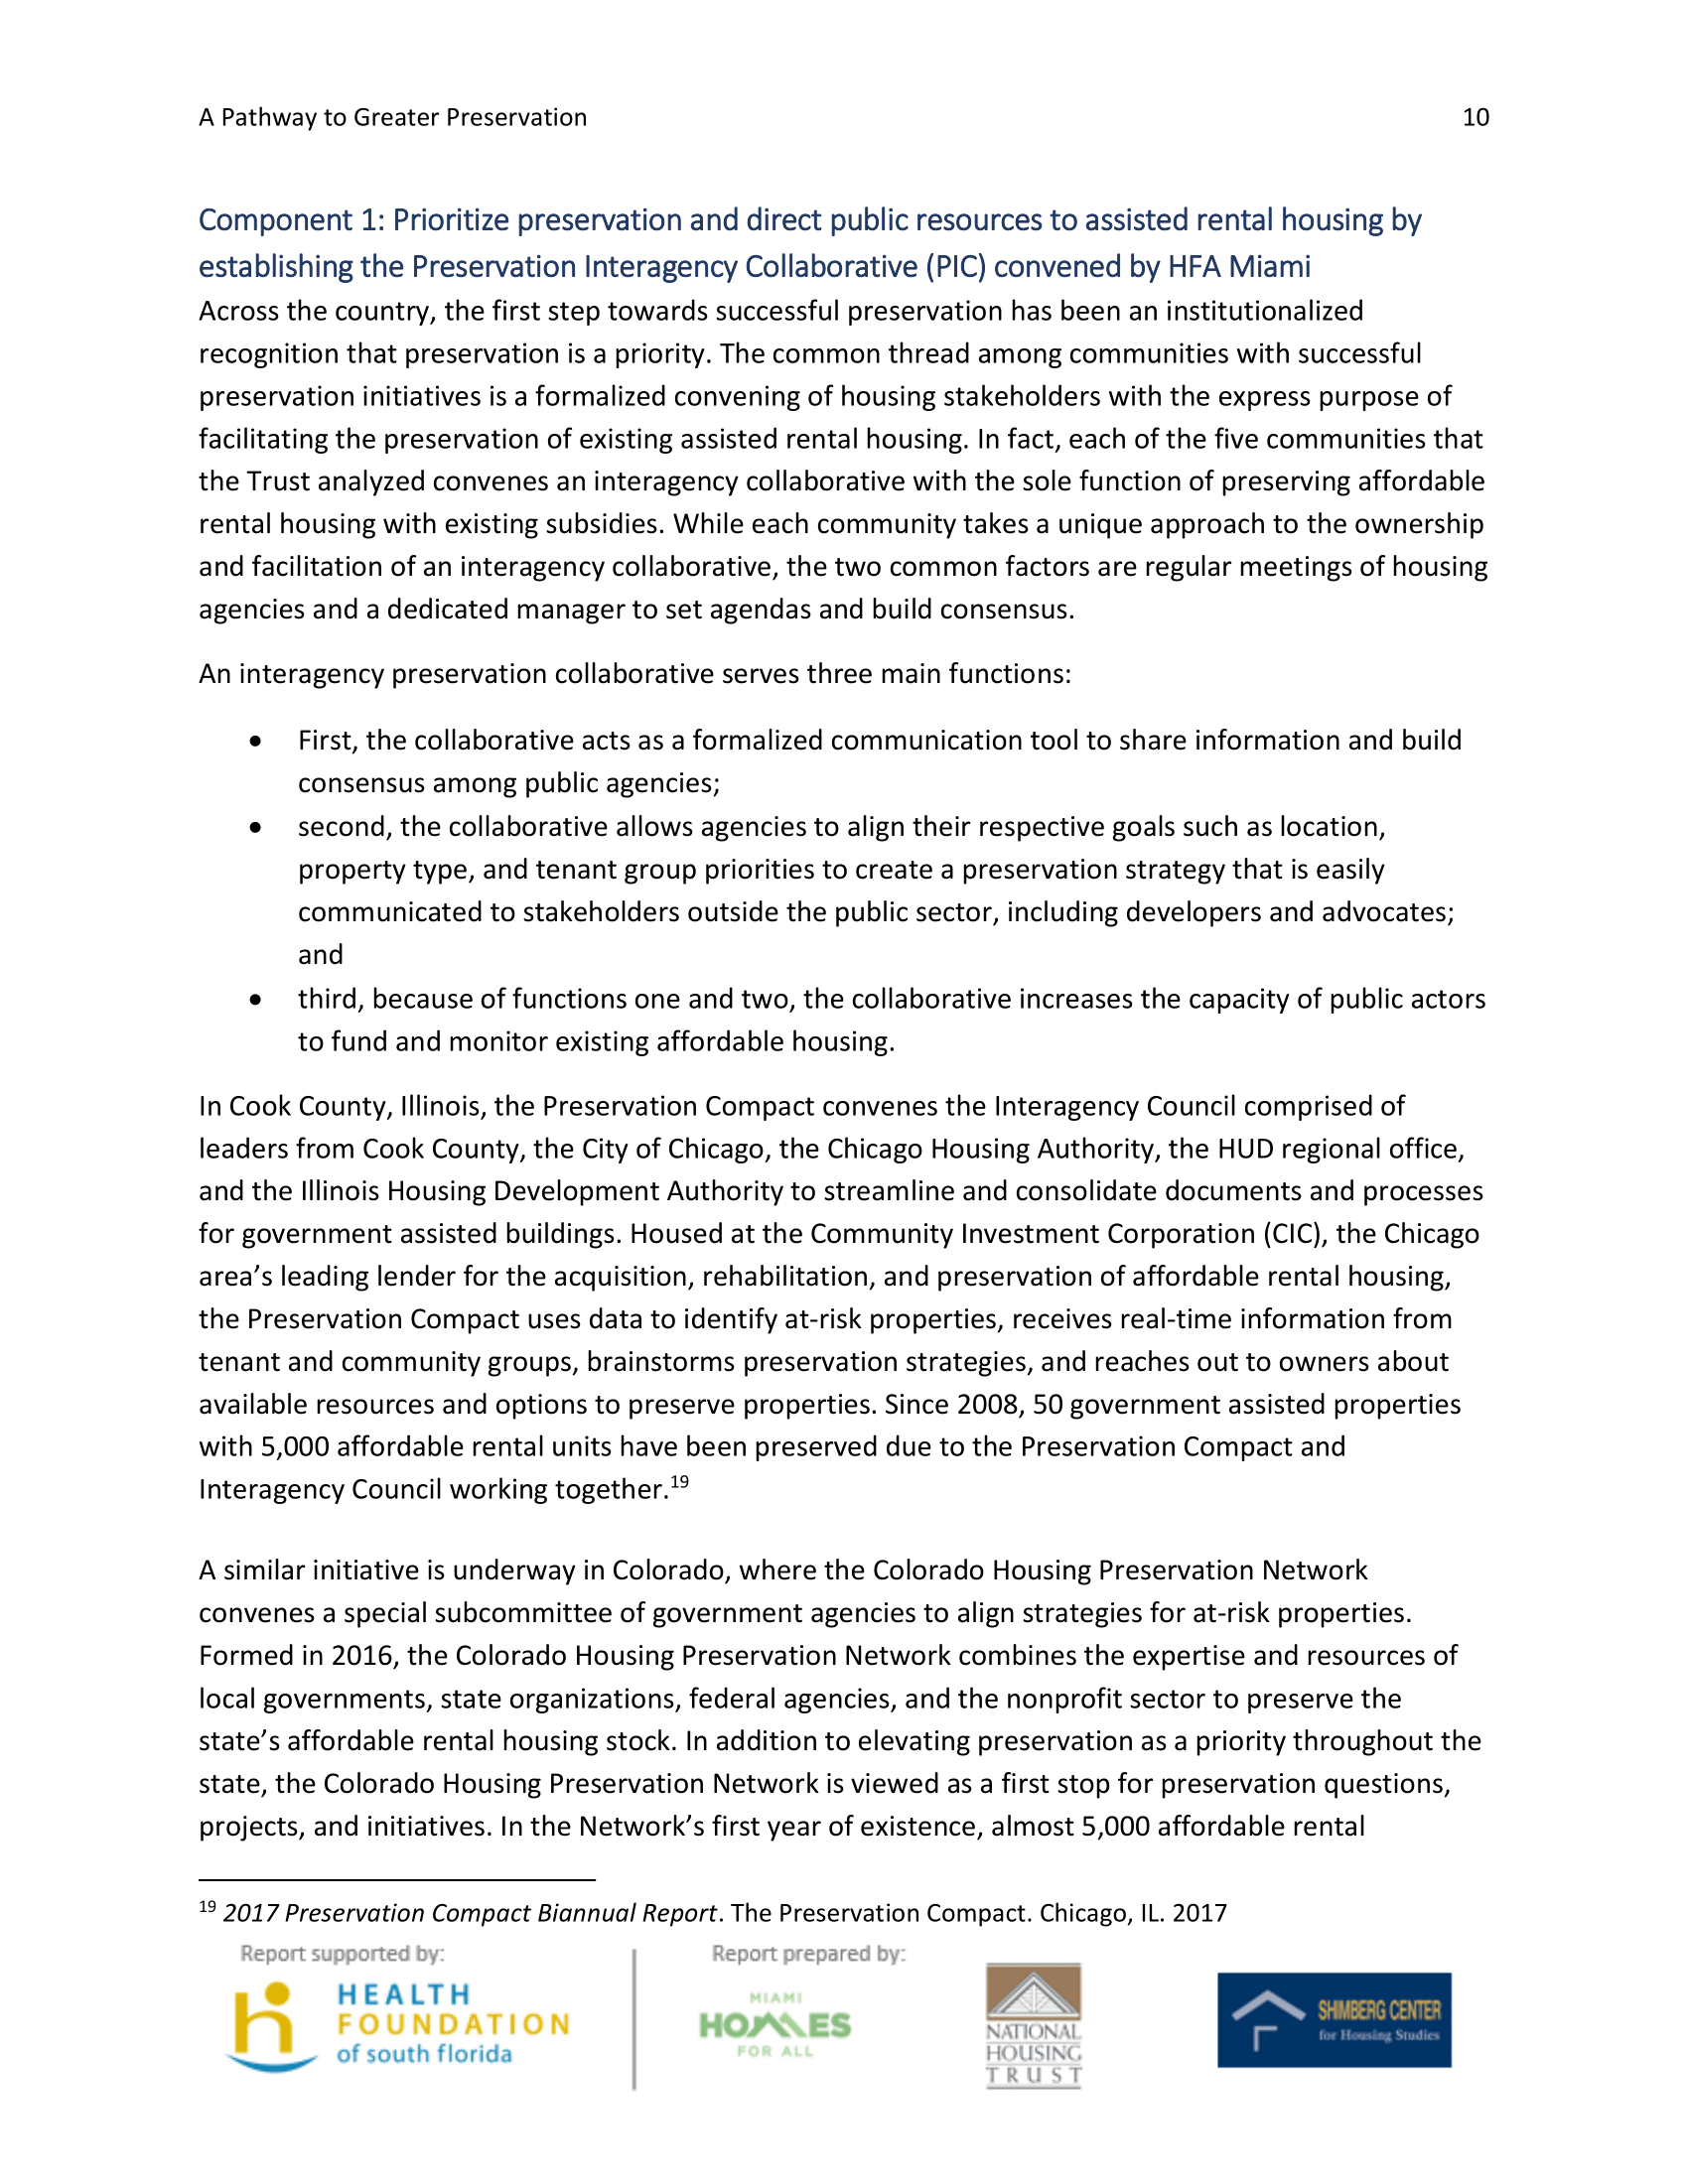 A Pathway to Greater Preservation - February 2018-18.png